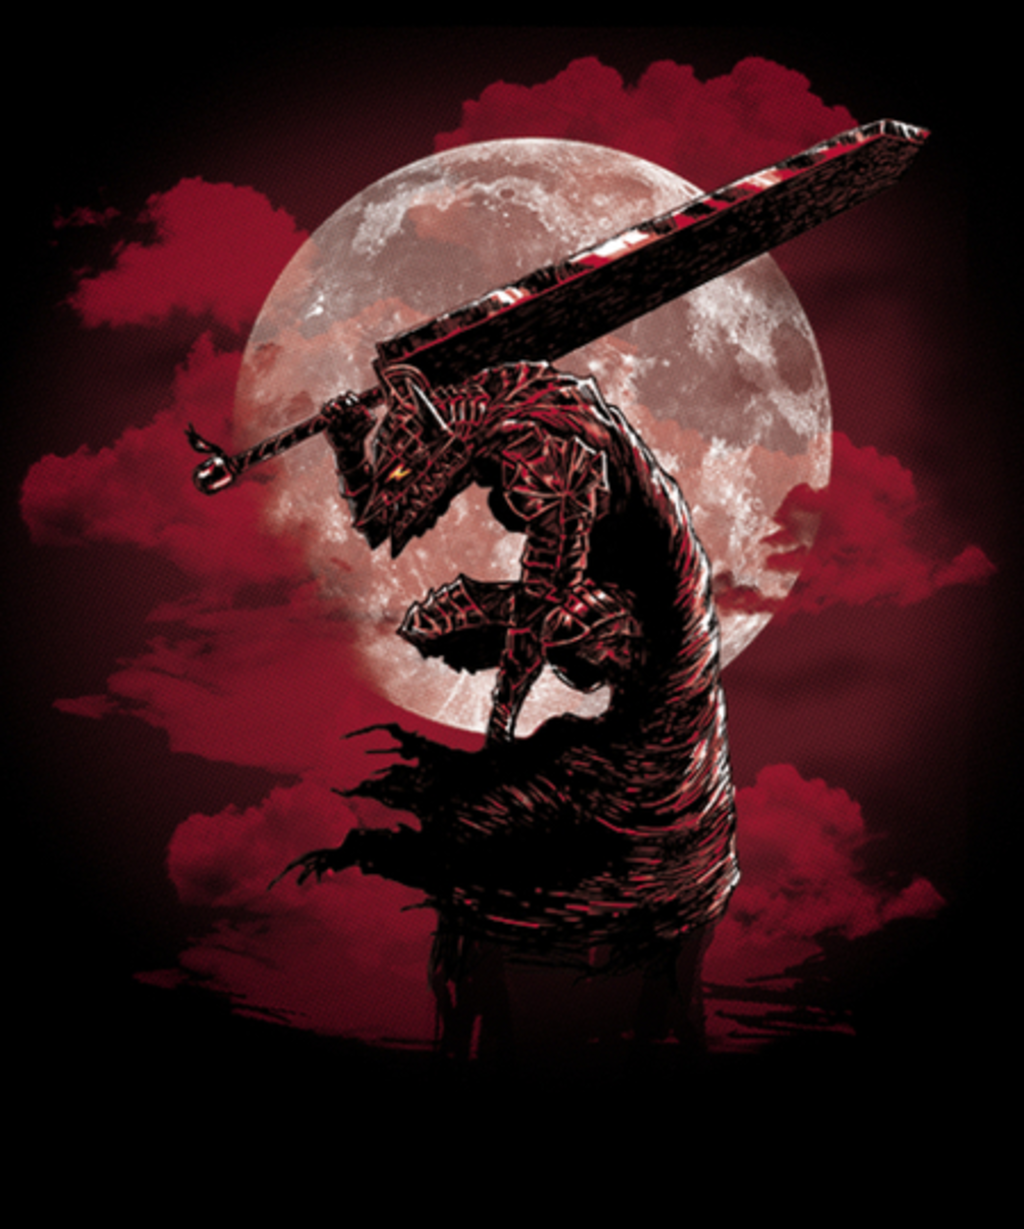 Qwertee: Guts demon